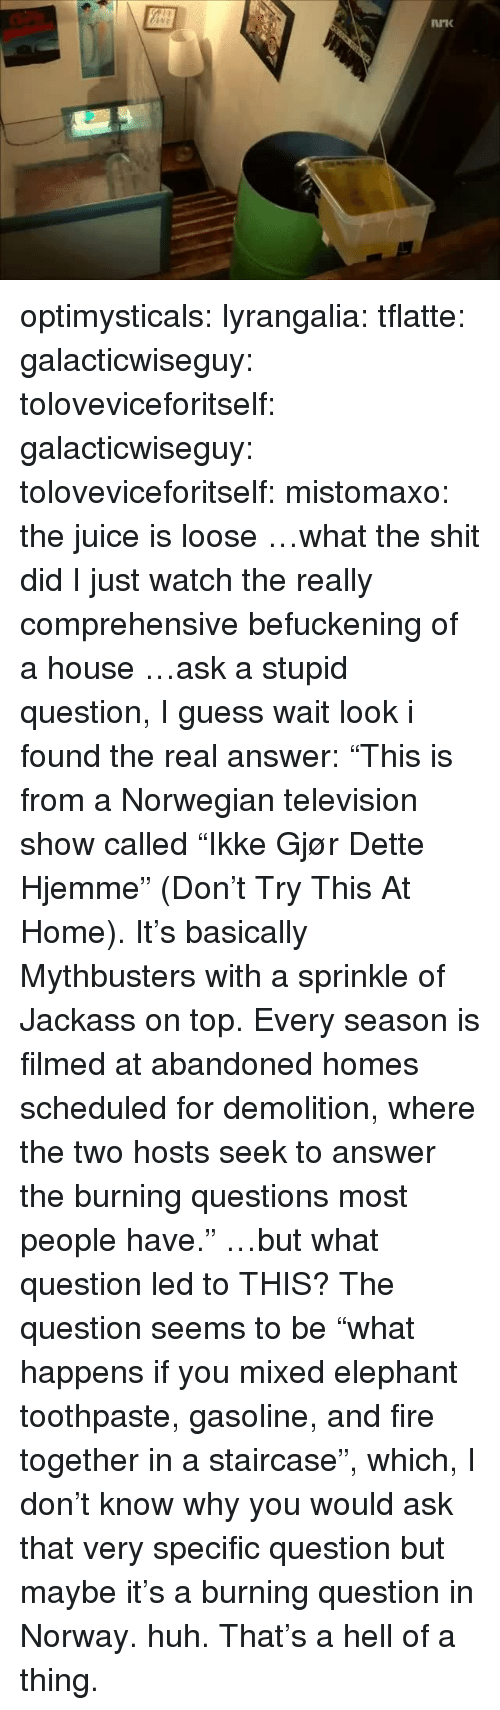 """Television: optimysticals:  lyrangalia:  tflatte:  galacticwiseguy:  toloveviceforitself:  galacticwiseguy:  toloveviceforitself:  mistomaxo:  the juice is loose  …what the shit did I just watch  the really comprehensive befuckening of a house  …ask a stupid question, I guess  wait look i found the real answer: """"This is from a Norwegian television show called """"Ikke Gjør Dette Hjemme"""" (Don't Try This At Home). It's basically Mythbusters with a sprinkle of Jackass on top. Every season is filmed at abandoned homes scheduled for demolition, where the two hosts seek to answer the burning questions most people have.""""  …but what question led to THIS?  The question seems to be""""what happens if you mixed elephant toothpaste, gasoline, and fire together in a staircase"""", which, I don't know whyyou would ask that very specific question but maybe it's a burning question in Norway.  huh. That's a hell of a thing."""